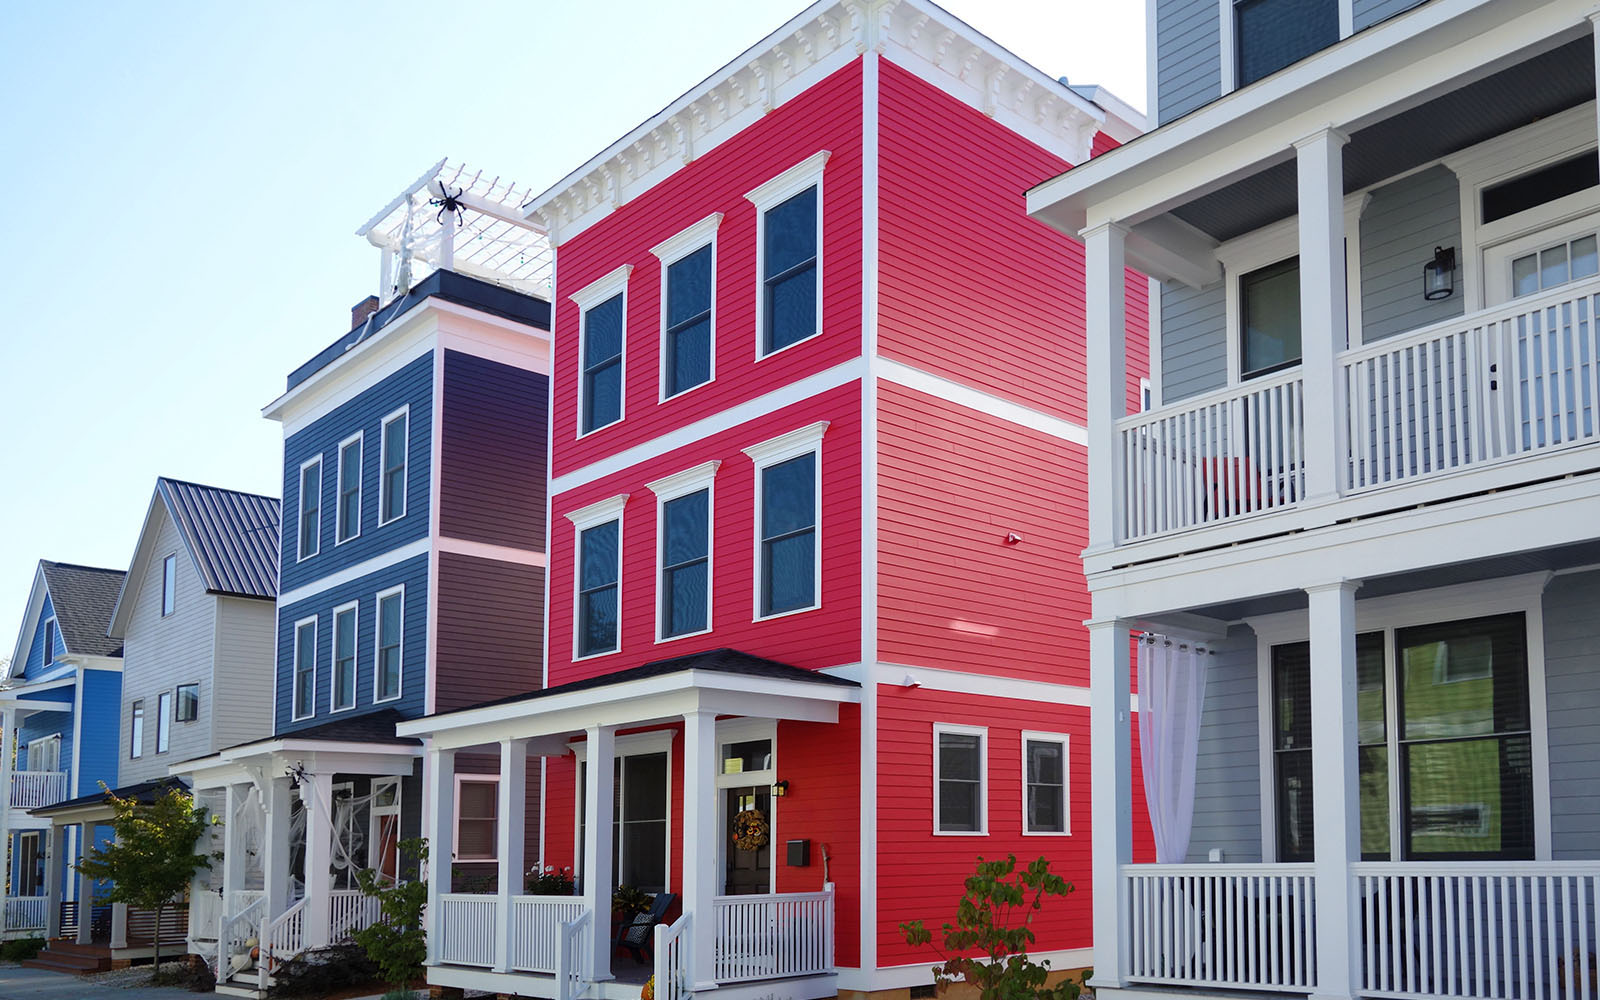 Photo showing colorful new homes in Raleigh, North Carolina